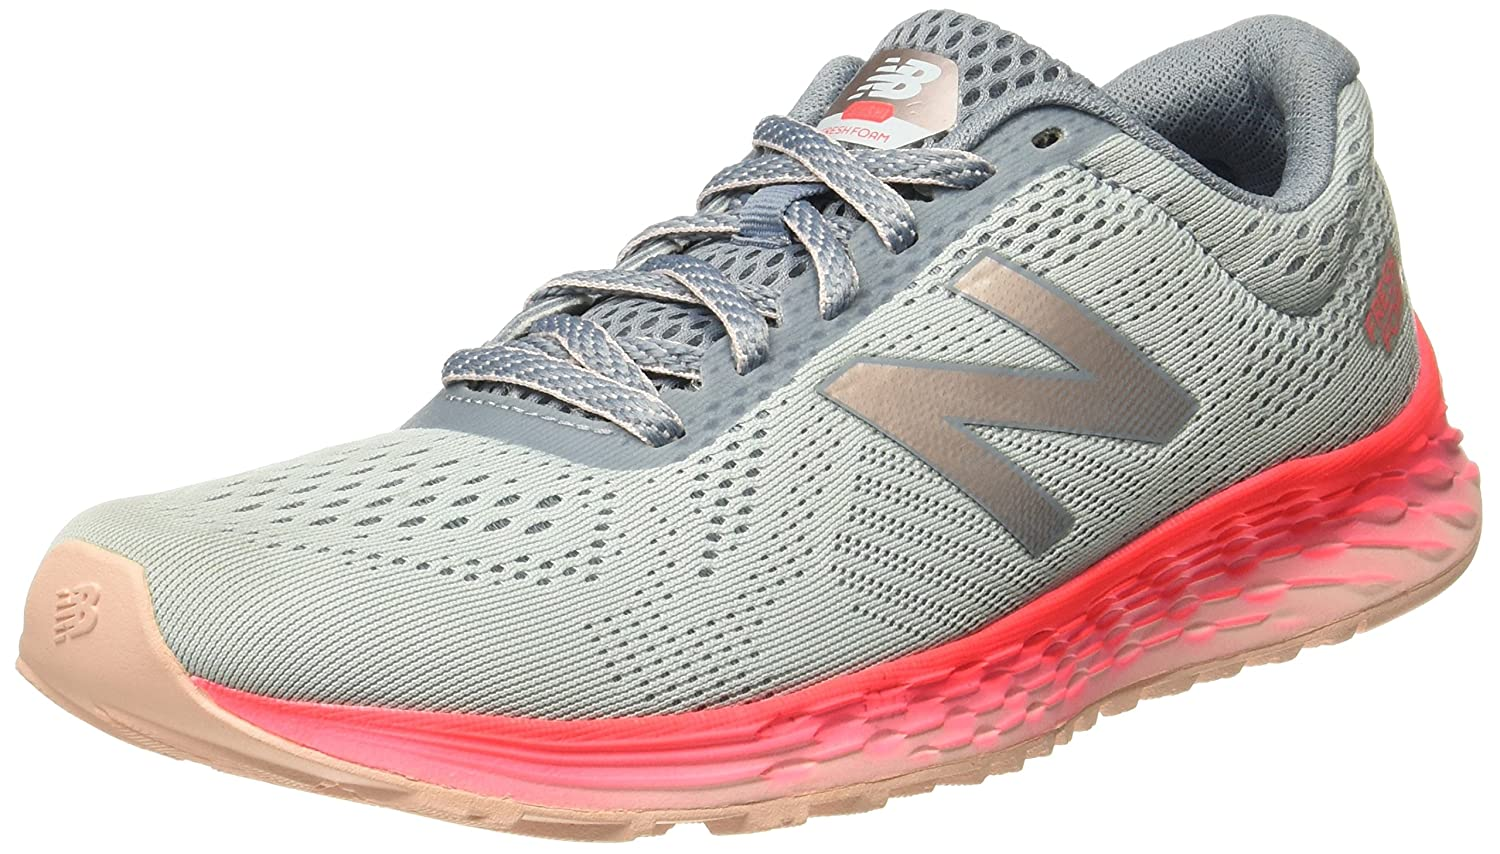 New Balance Women's Fresh Foam Arishi V1 Running Shoe B06XSBT5B8 10 D US|Light Porcelain Blue/Vivid Coral